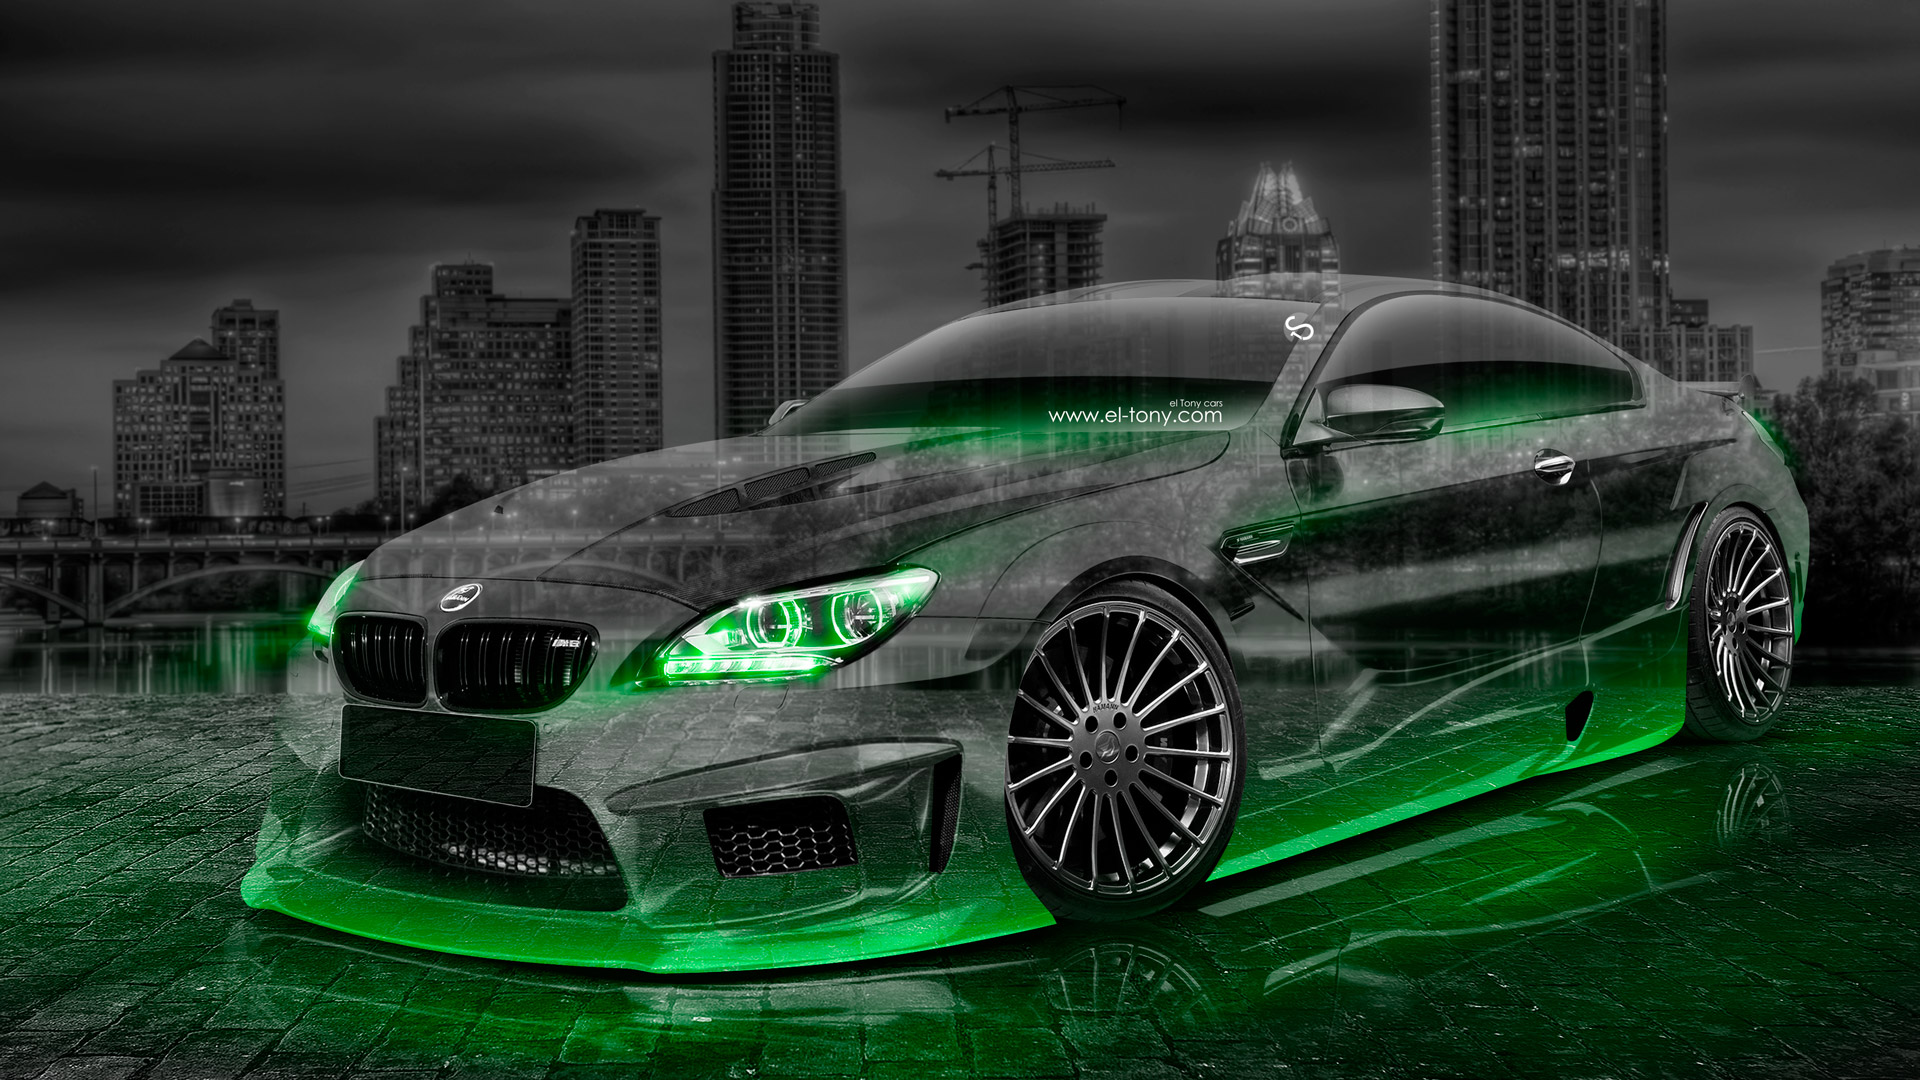 Bmw M6 Hamann Tuning Crystal City Car 2015 El Tony